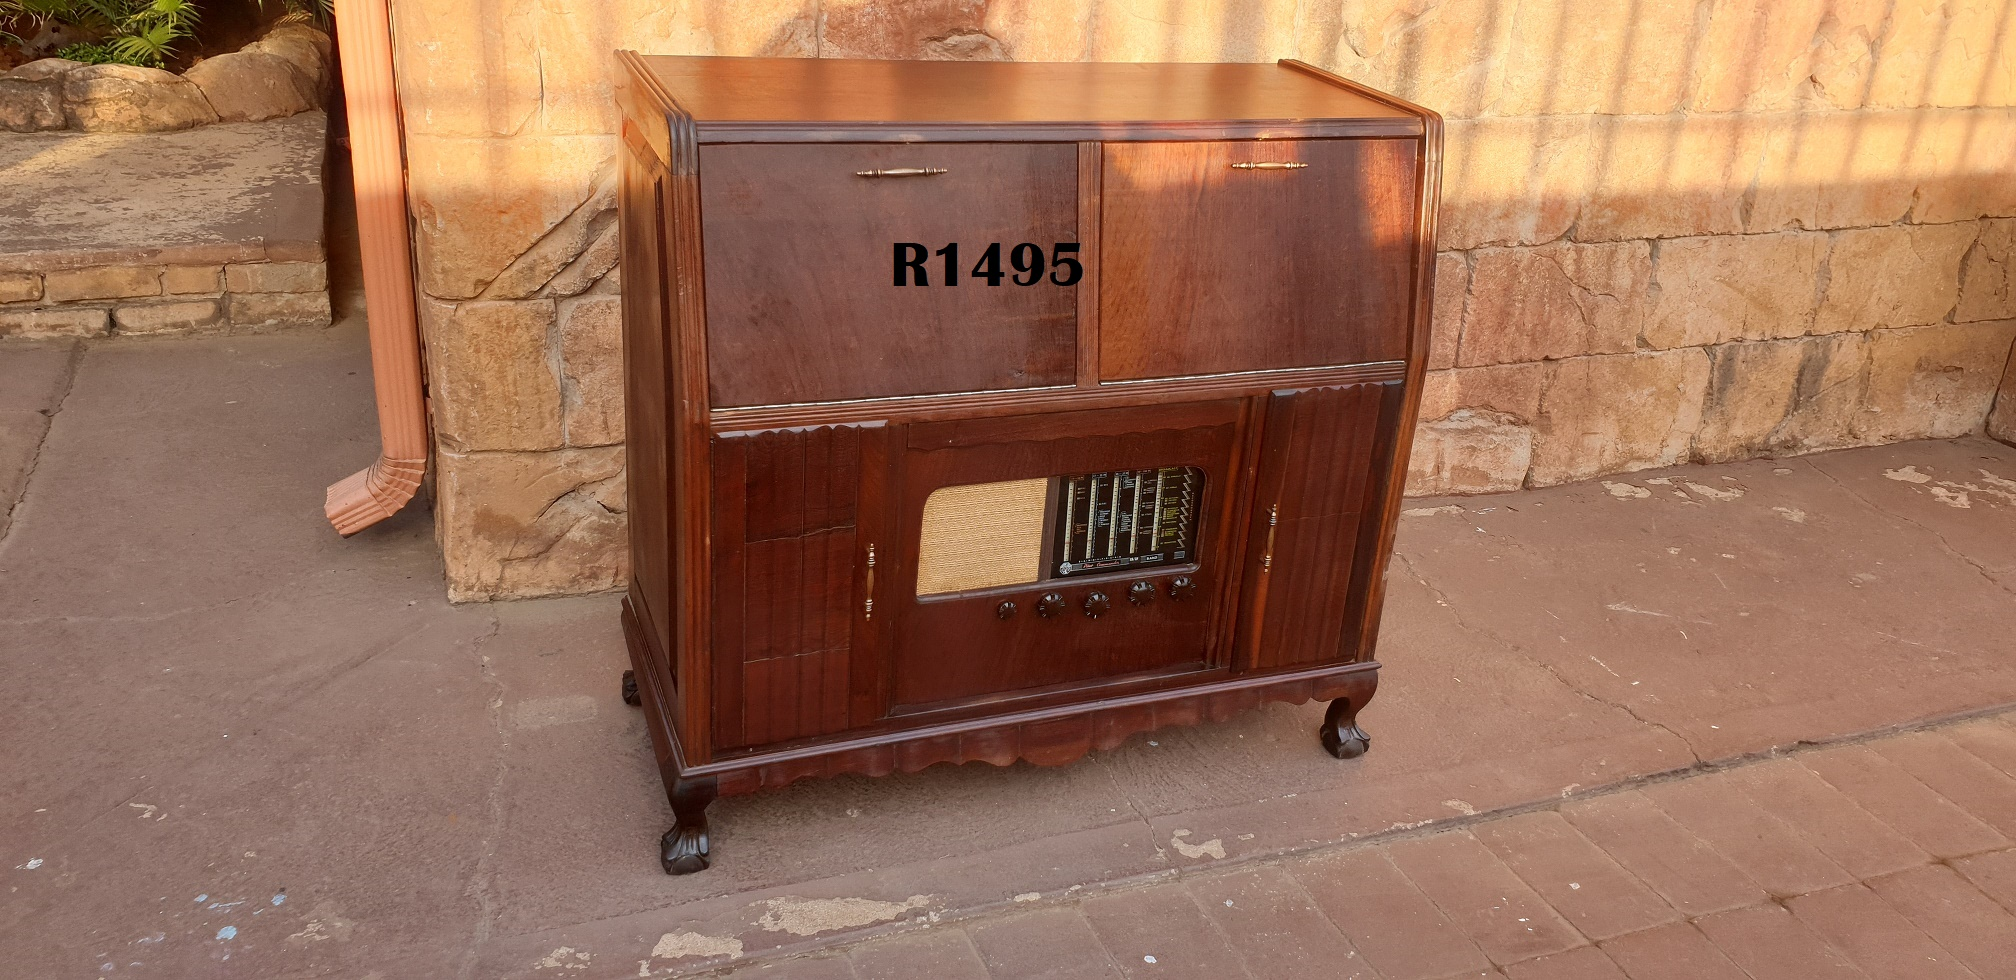 Ball and Claw Radio Cabinet (1010x460x965)